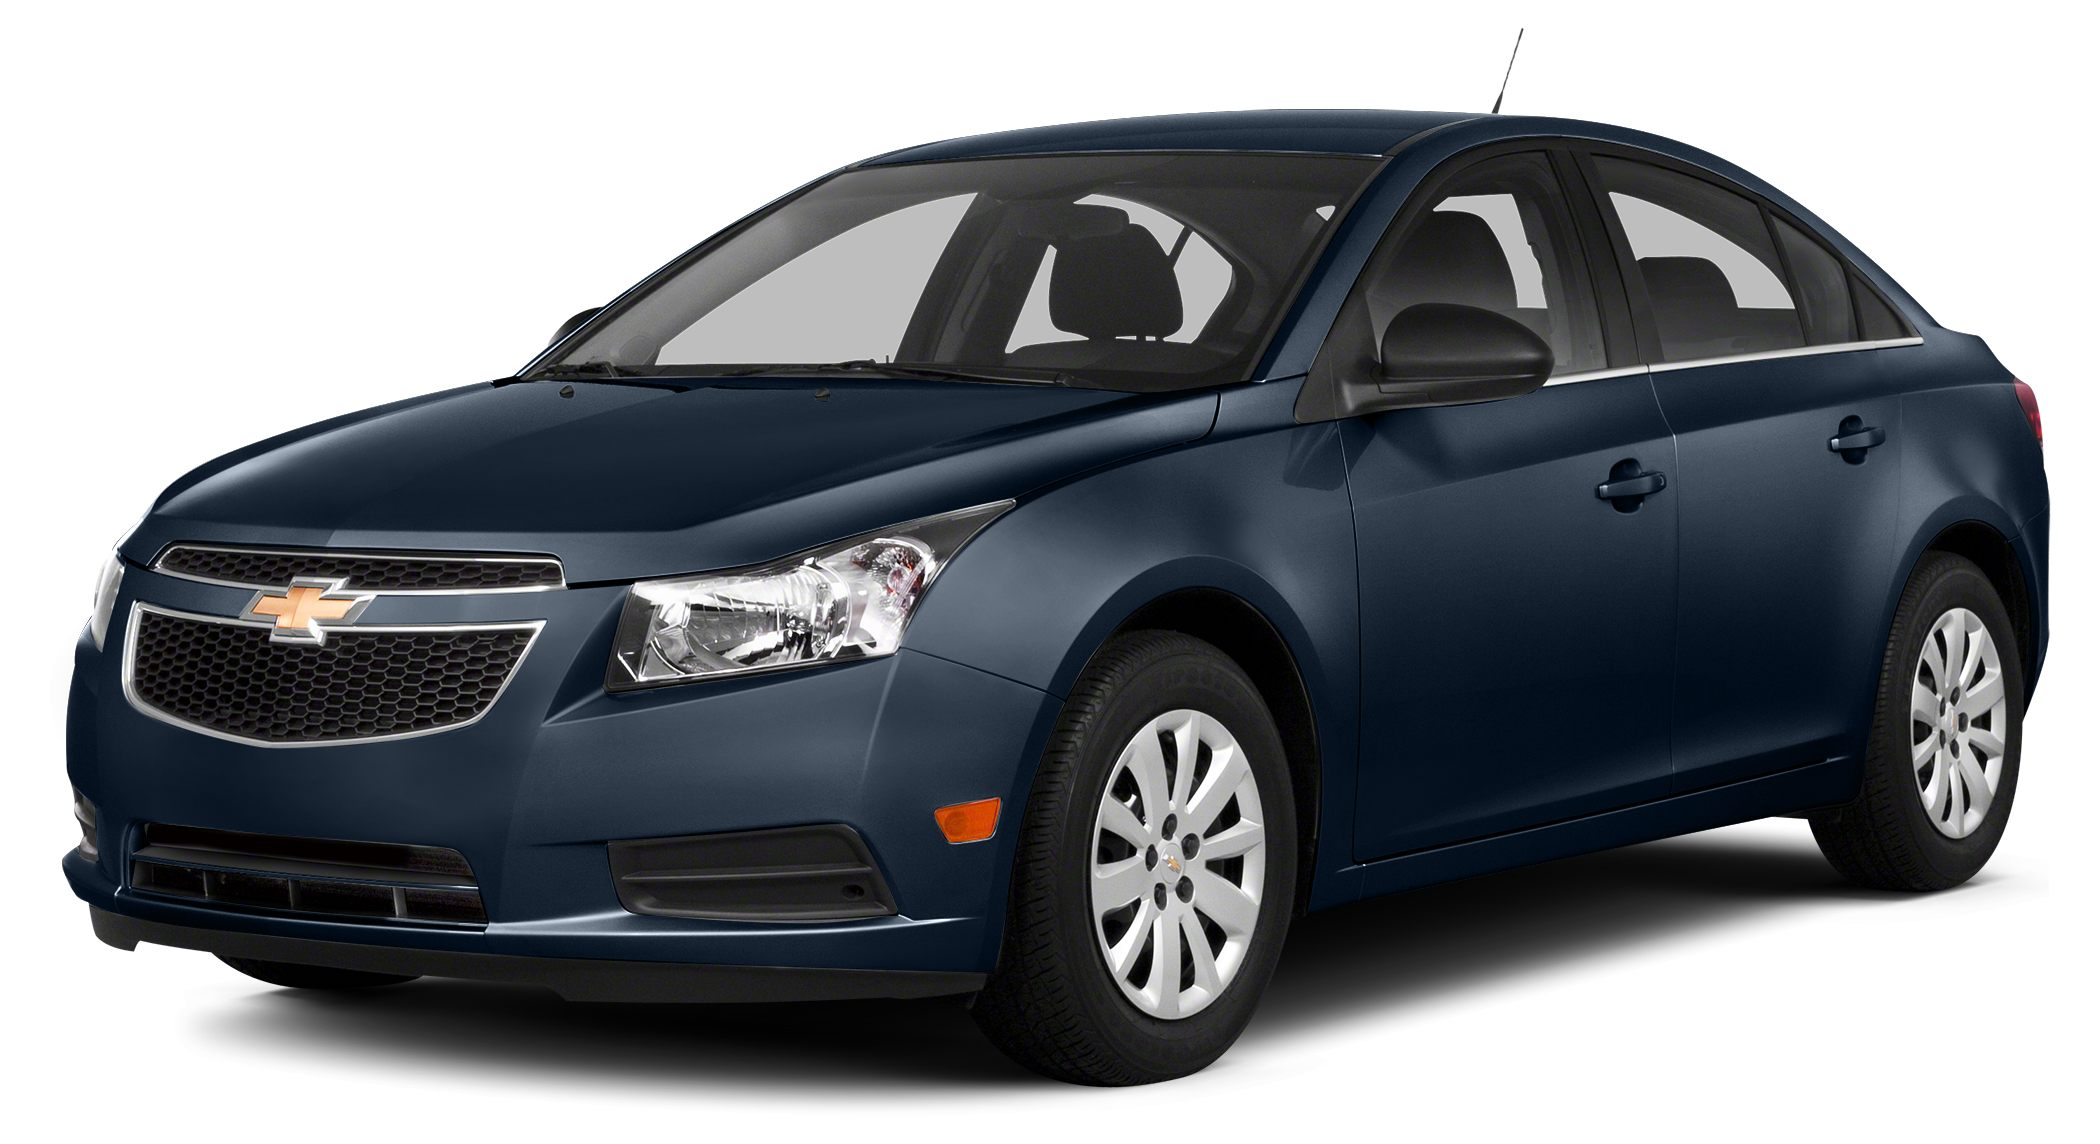 2014 Chevrolet Cruze 1LT CARFAX 1-Owner Excellent Condition PRICE DROP FROM 15400 EPA 38 MPG